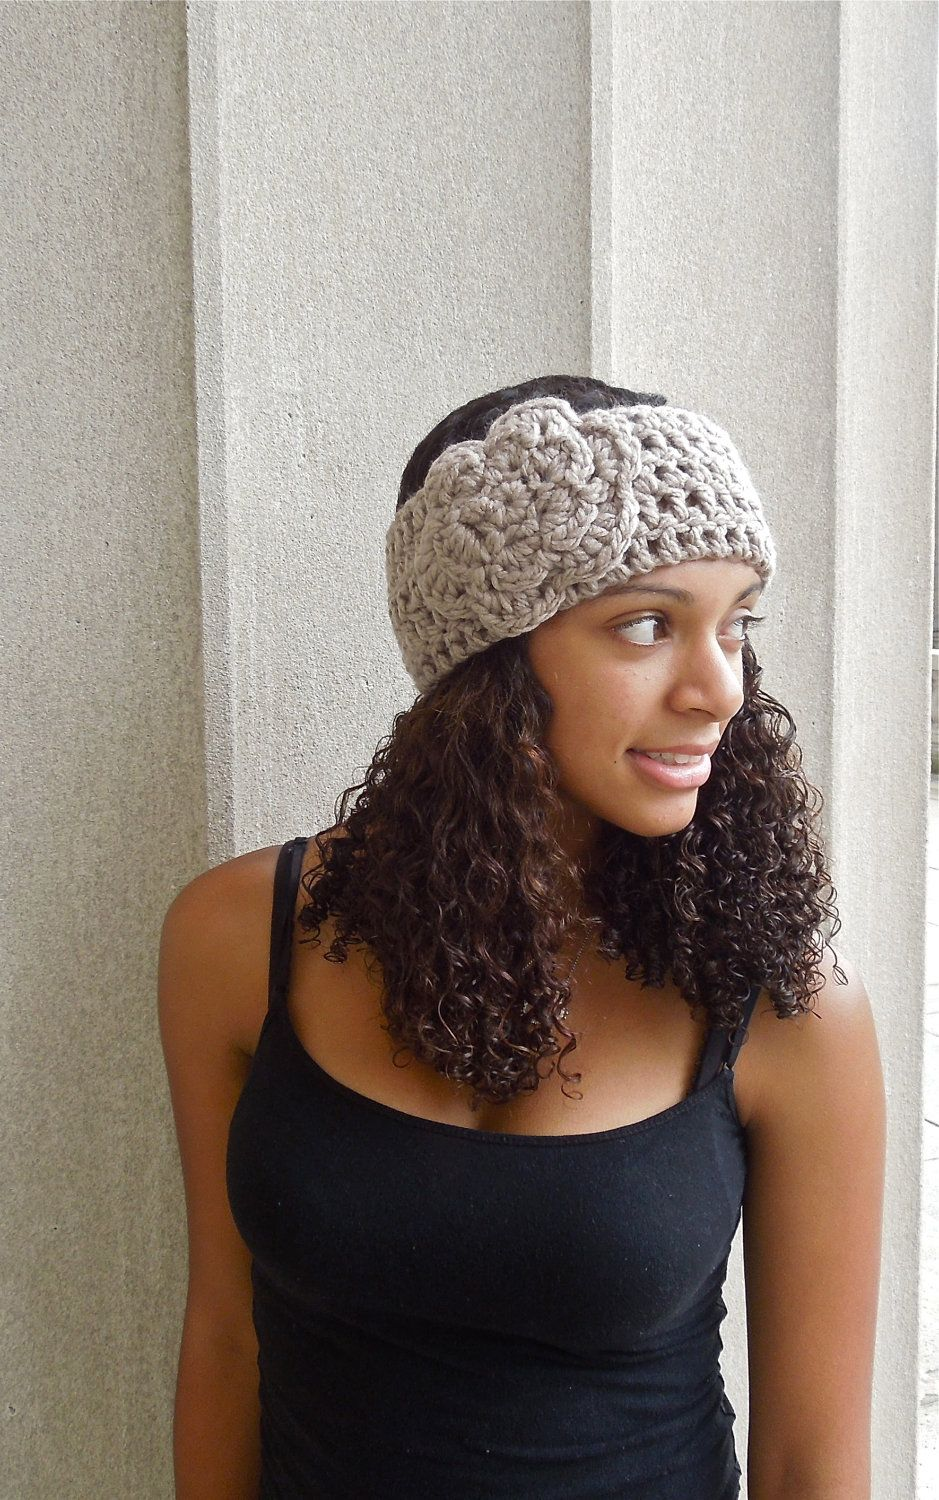 Check etsy for hand-knitted, keep-warm items. Another stylish ...